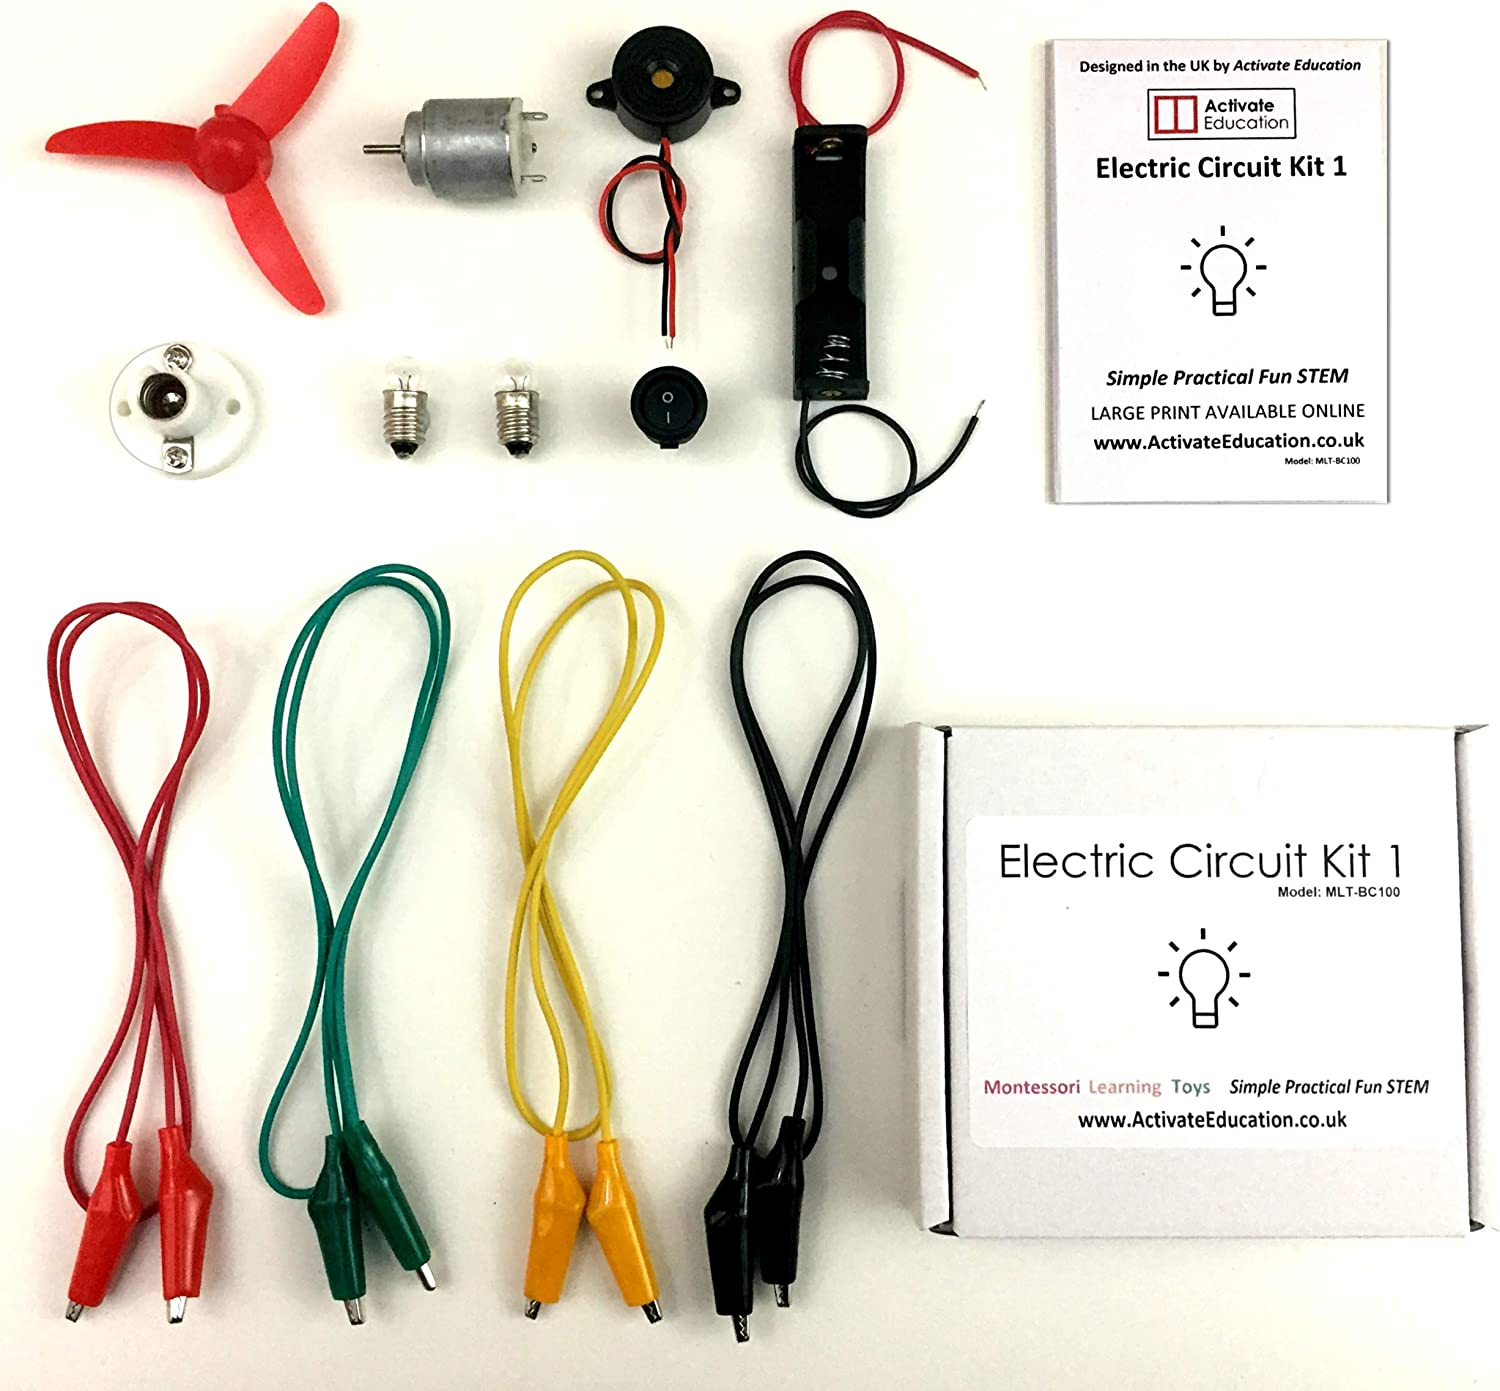 Electric Circuit Kit 1 Activate Education Montessori Learning Toys